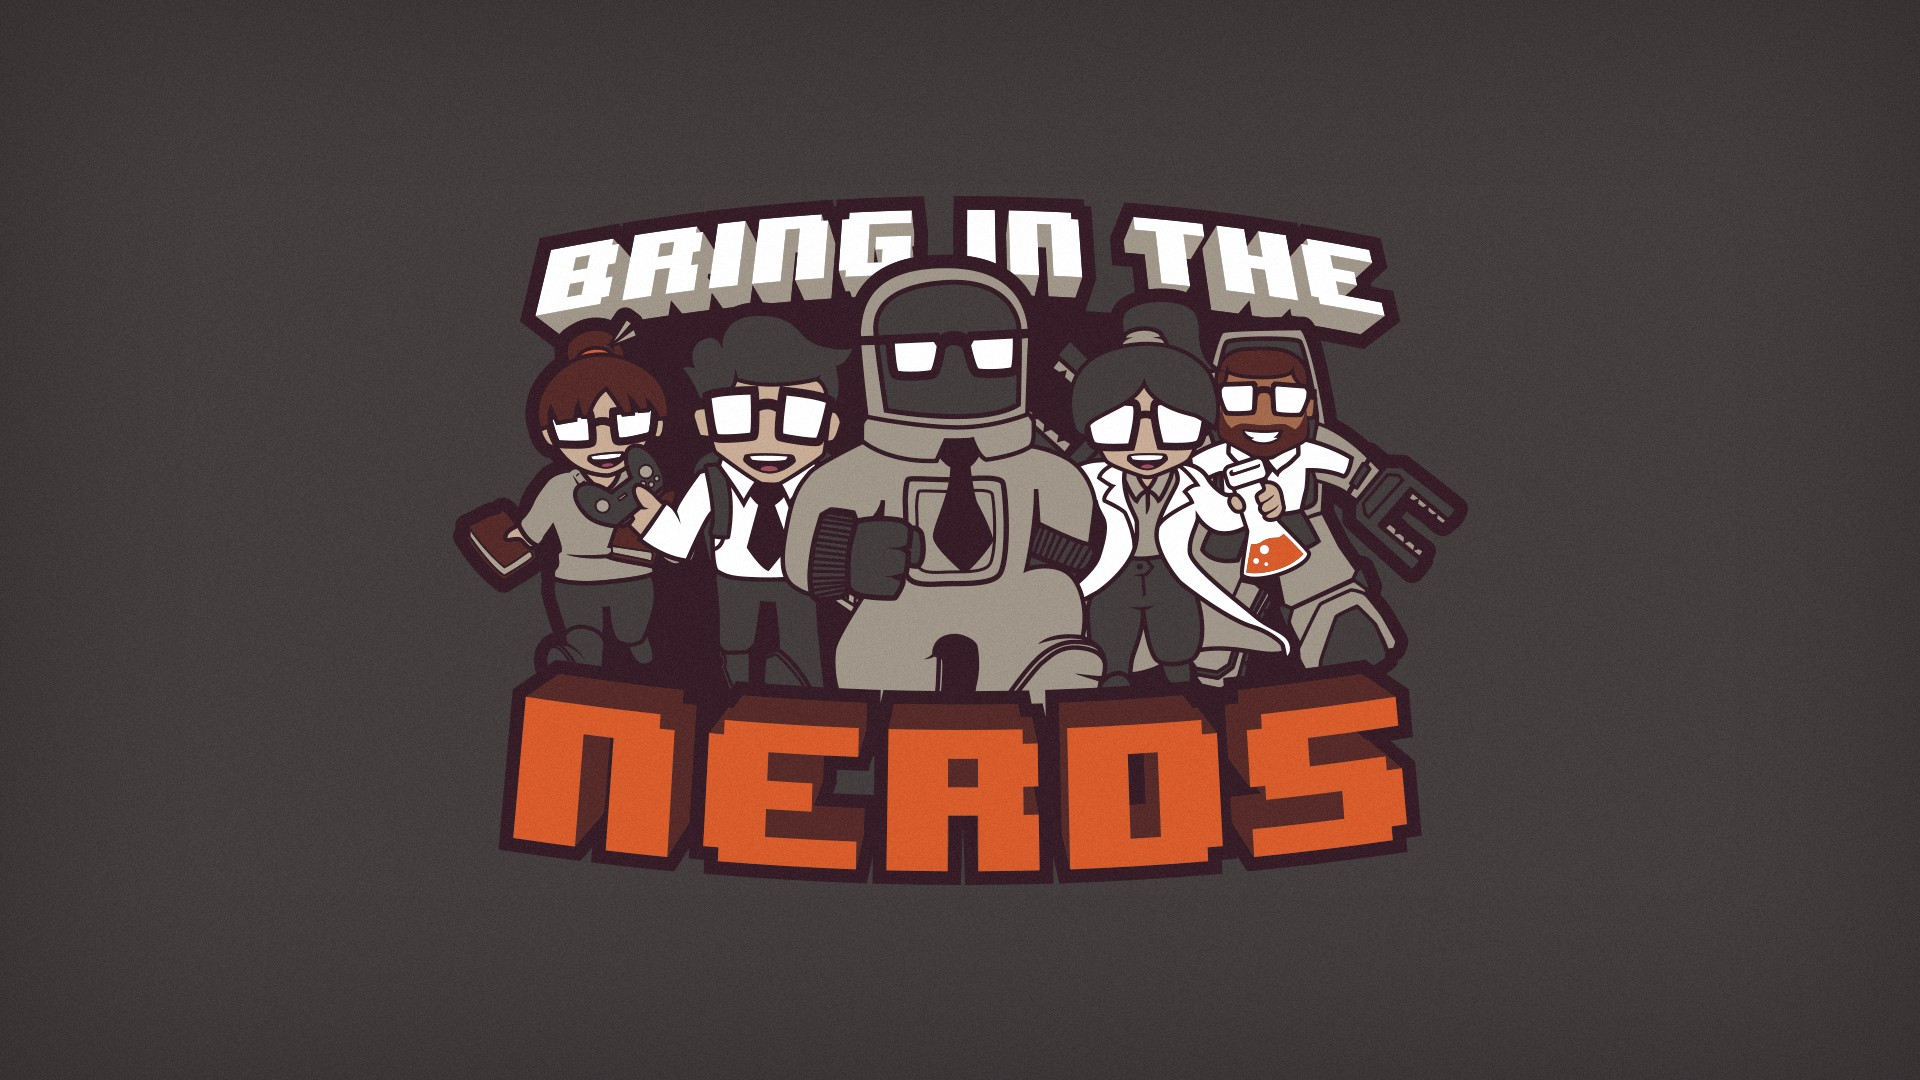 Nerd wallpaper download free cool high resolution backgrounds 1920x1080 bring in the nerds wallpaper edition by blo0p customization wallpaper voltagebd Choice Image